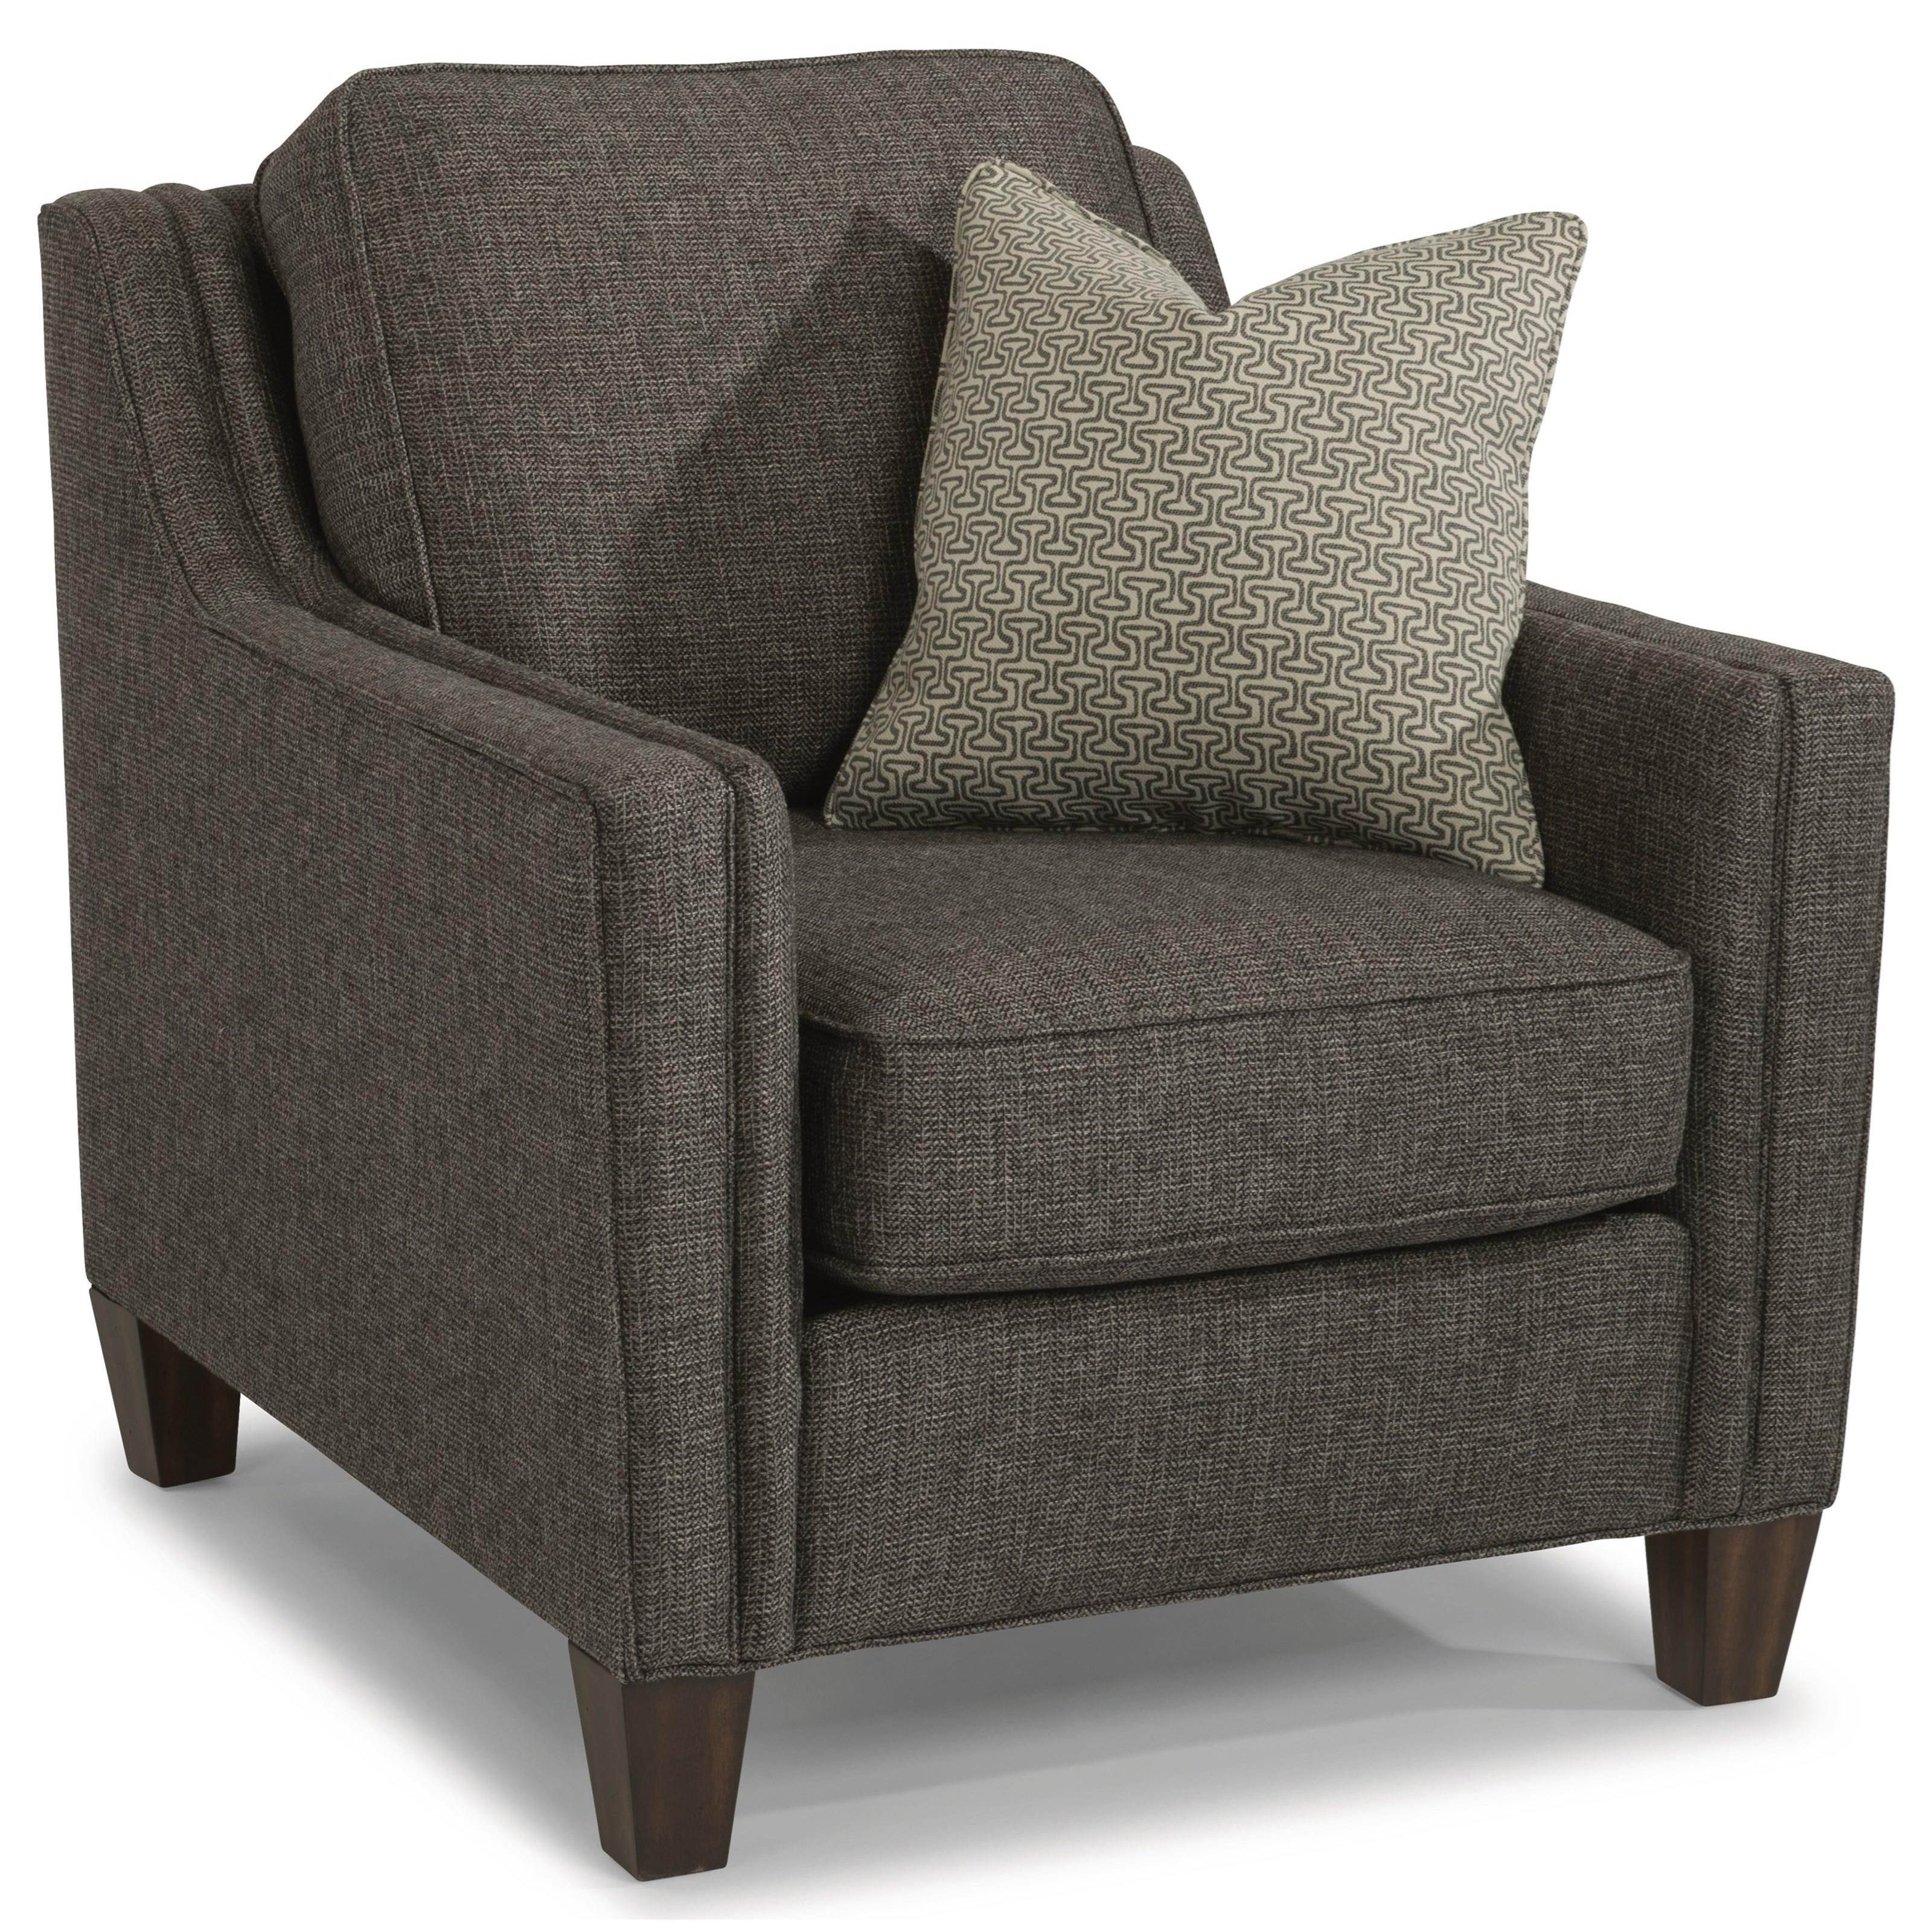 Flexsteel Kimball Contemporary Chair With Track Arms | Crowley Furniture |  Upholstered Chairs